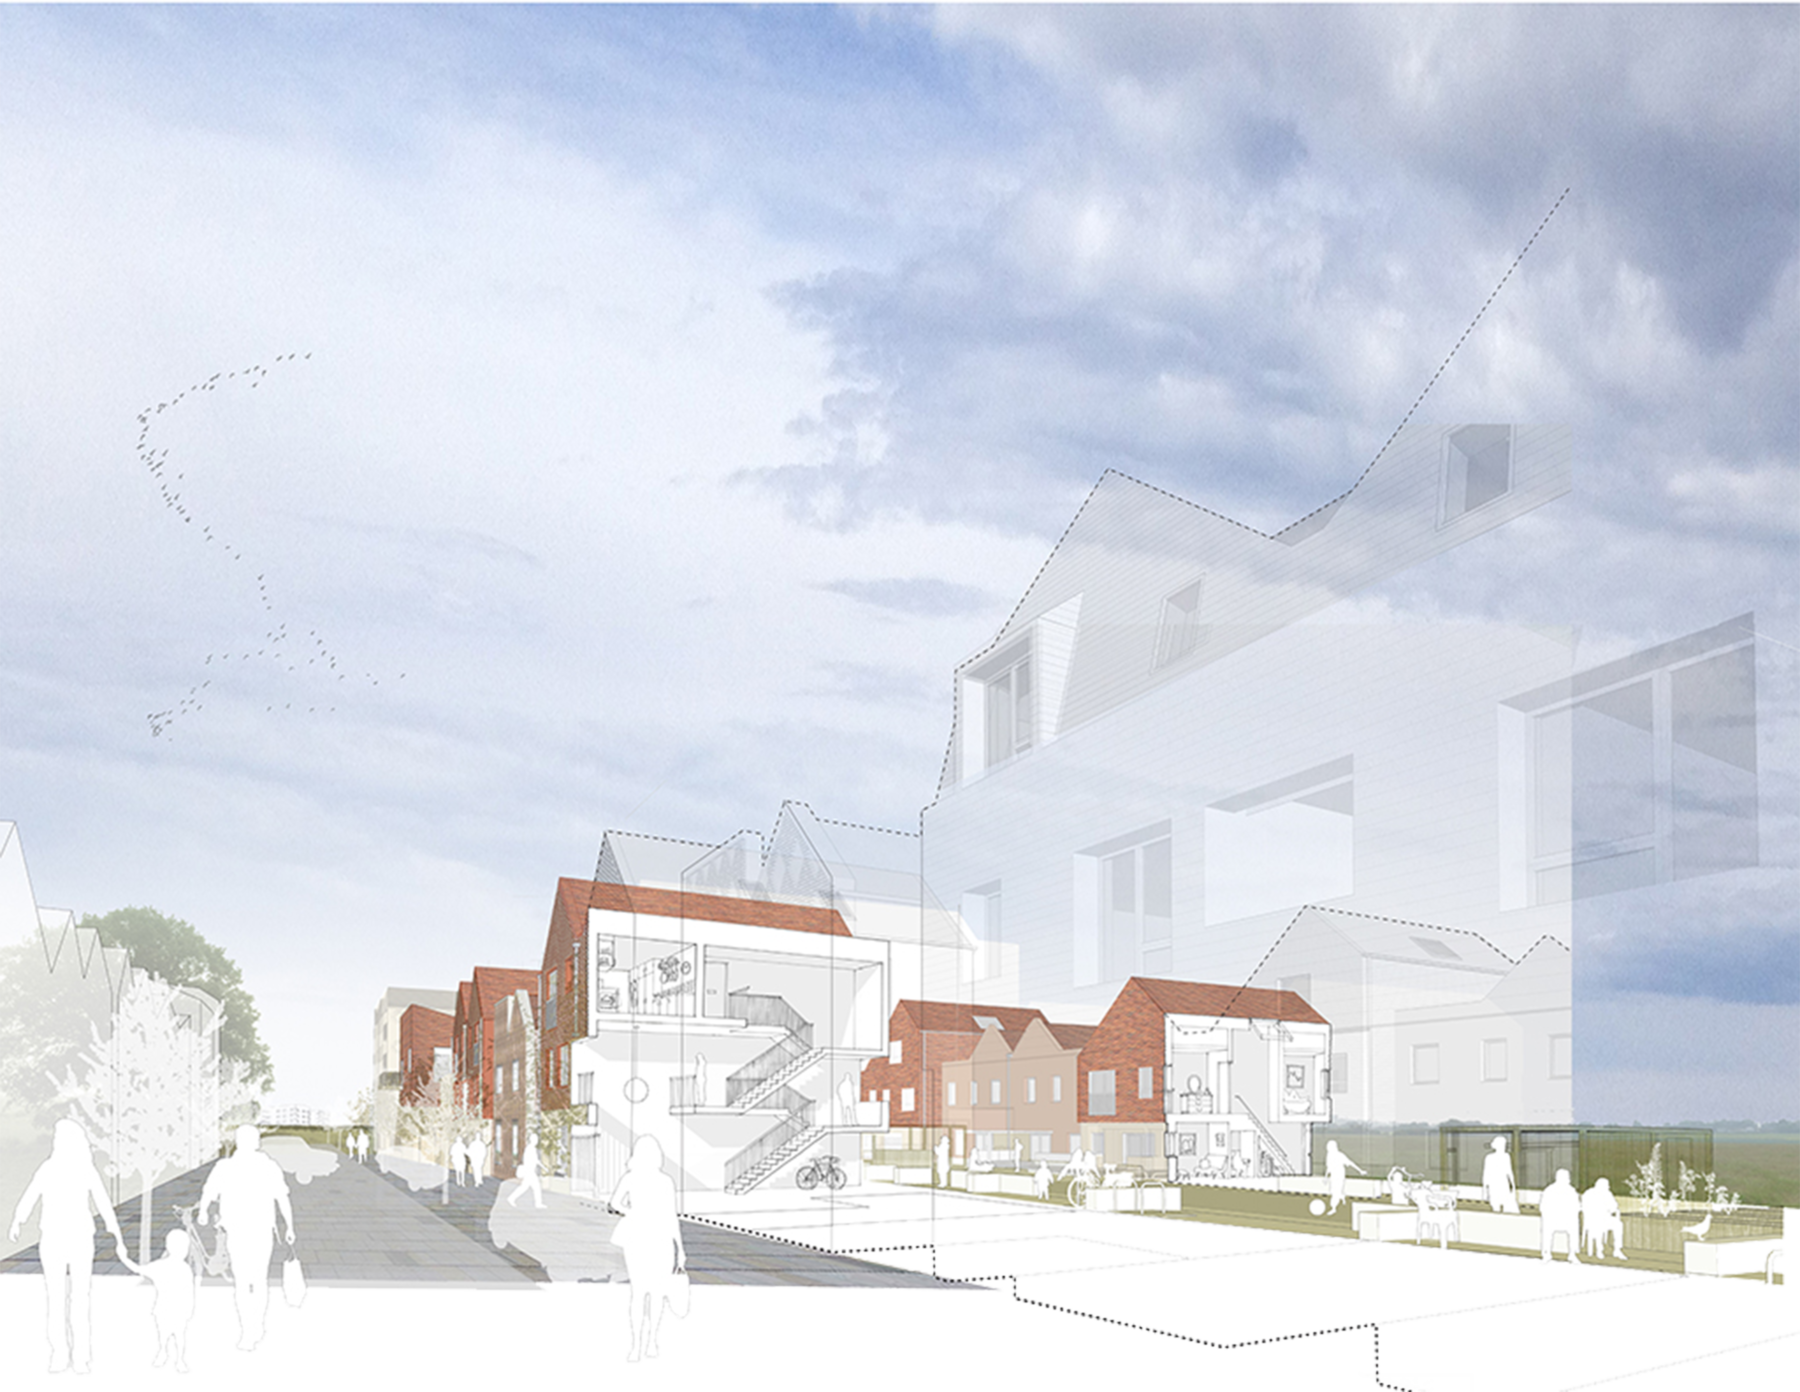 Sarah-Wigglesworth-Architects NWC street-perspective 3600